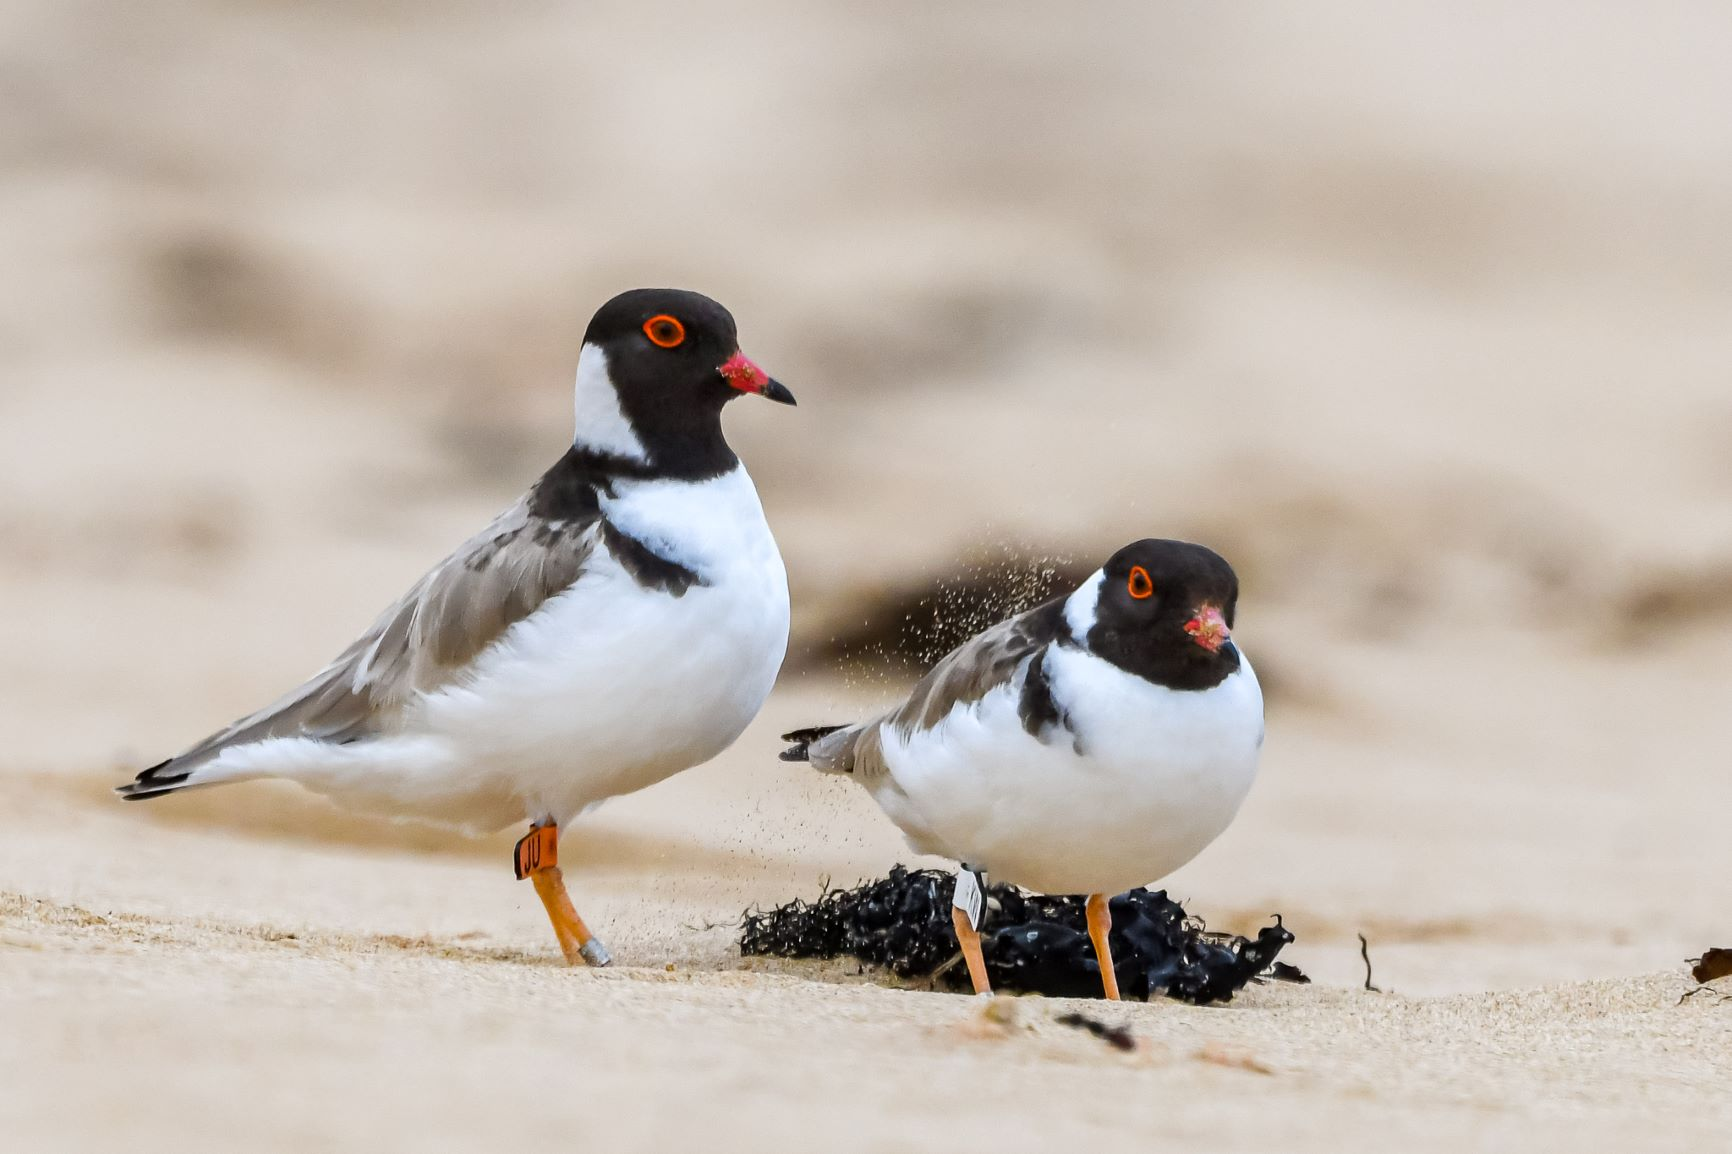 The hooded plover pair JU and KW hanging out together on the beach